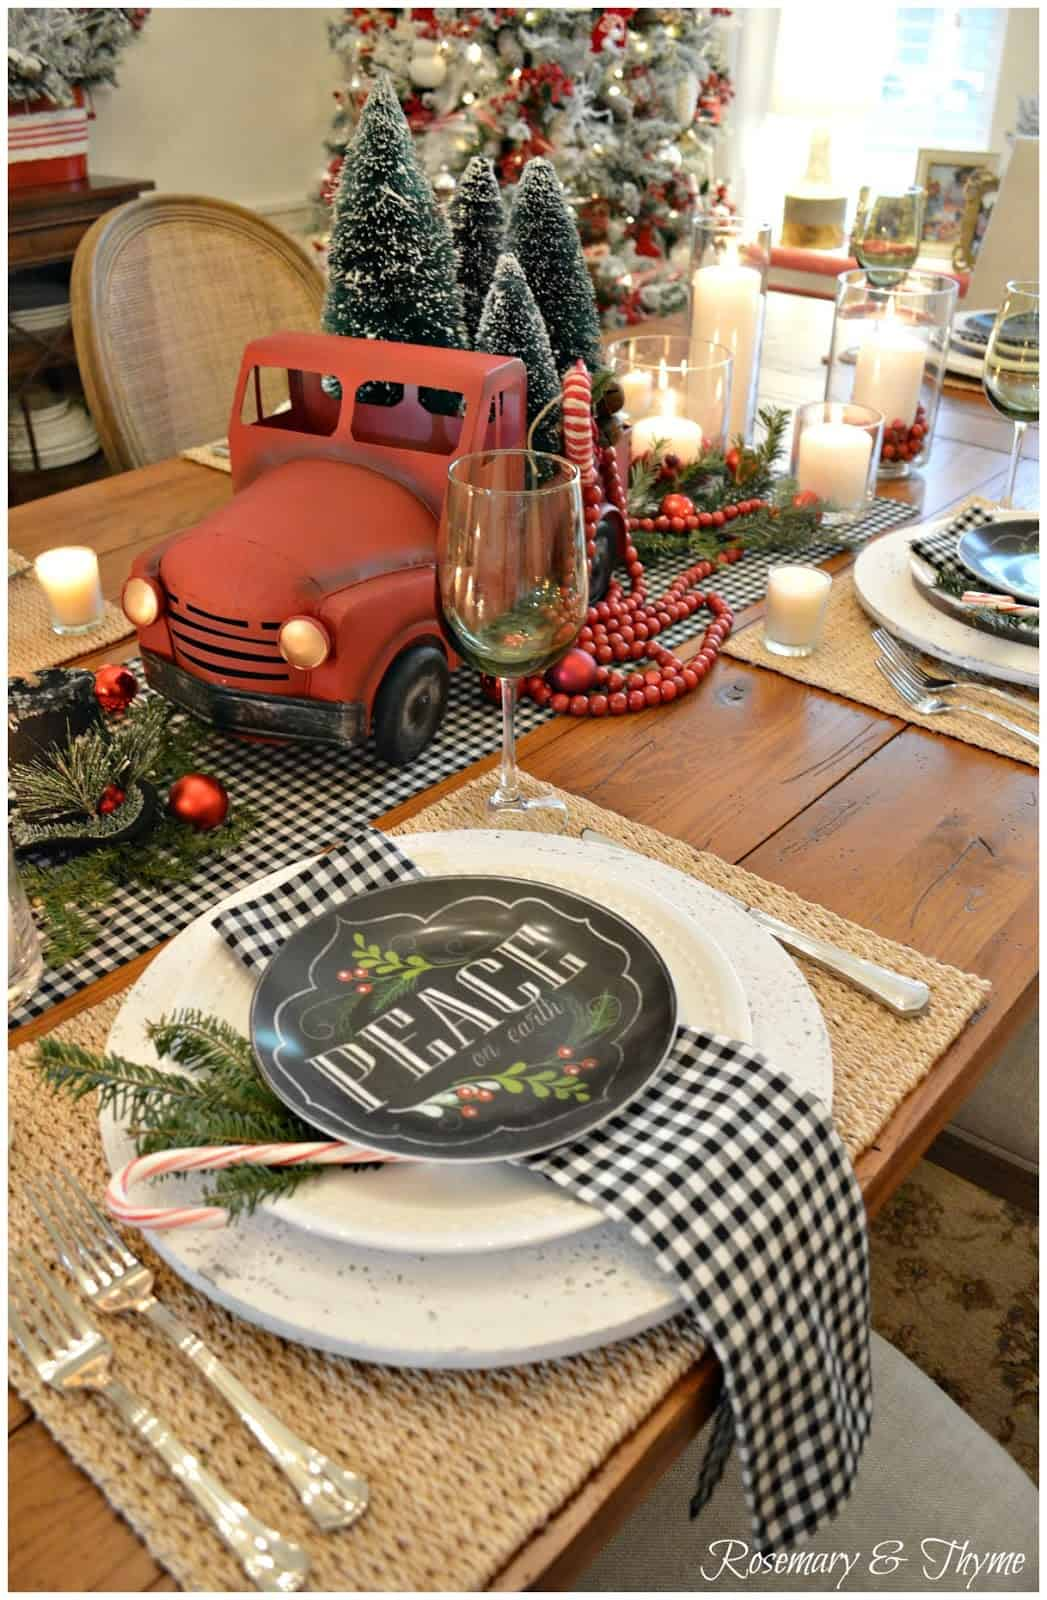 Christmas Ideas DIY Decoration & Food for the Home Party. Are you looking for some awesome Christmas ideas of DIY decorations for home party? I've got here a collection of great Xmas ideas, including Christmas food ideas for your family! #christmas #christmasdecor #xmas #xmastreedecorations #decor #decoration #diy #homedecor